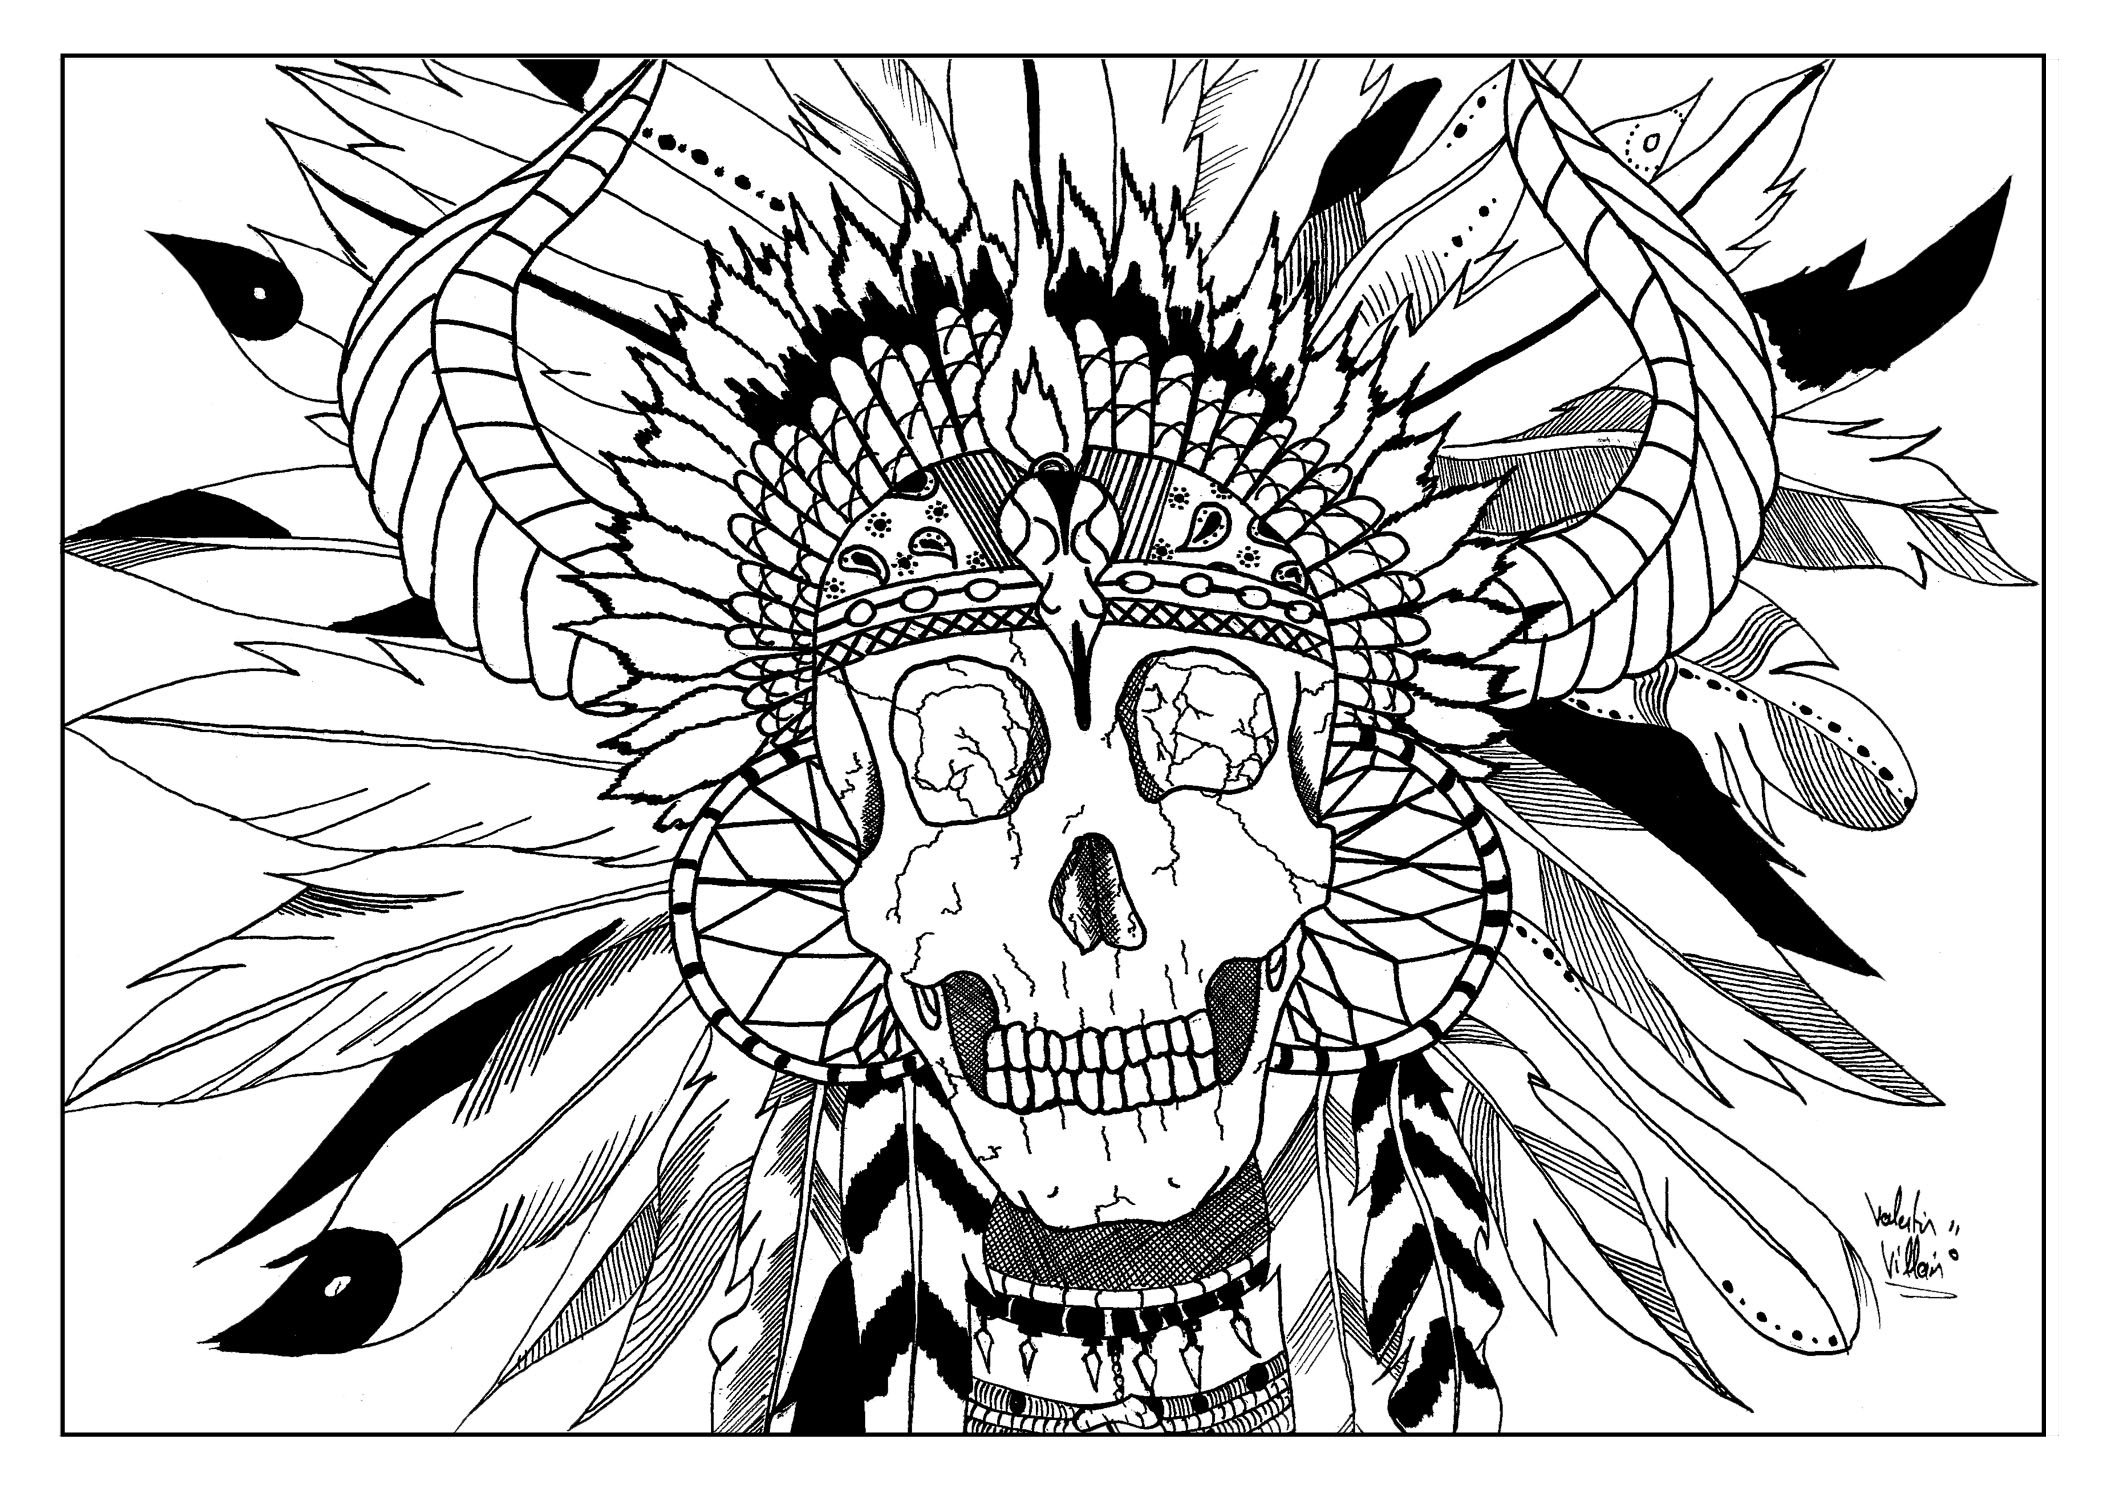 coloring page of a native american skull with a headdress waiting to be colored - Native American Coloring Pages